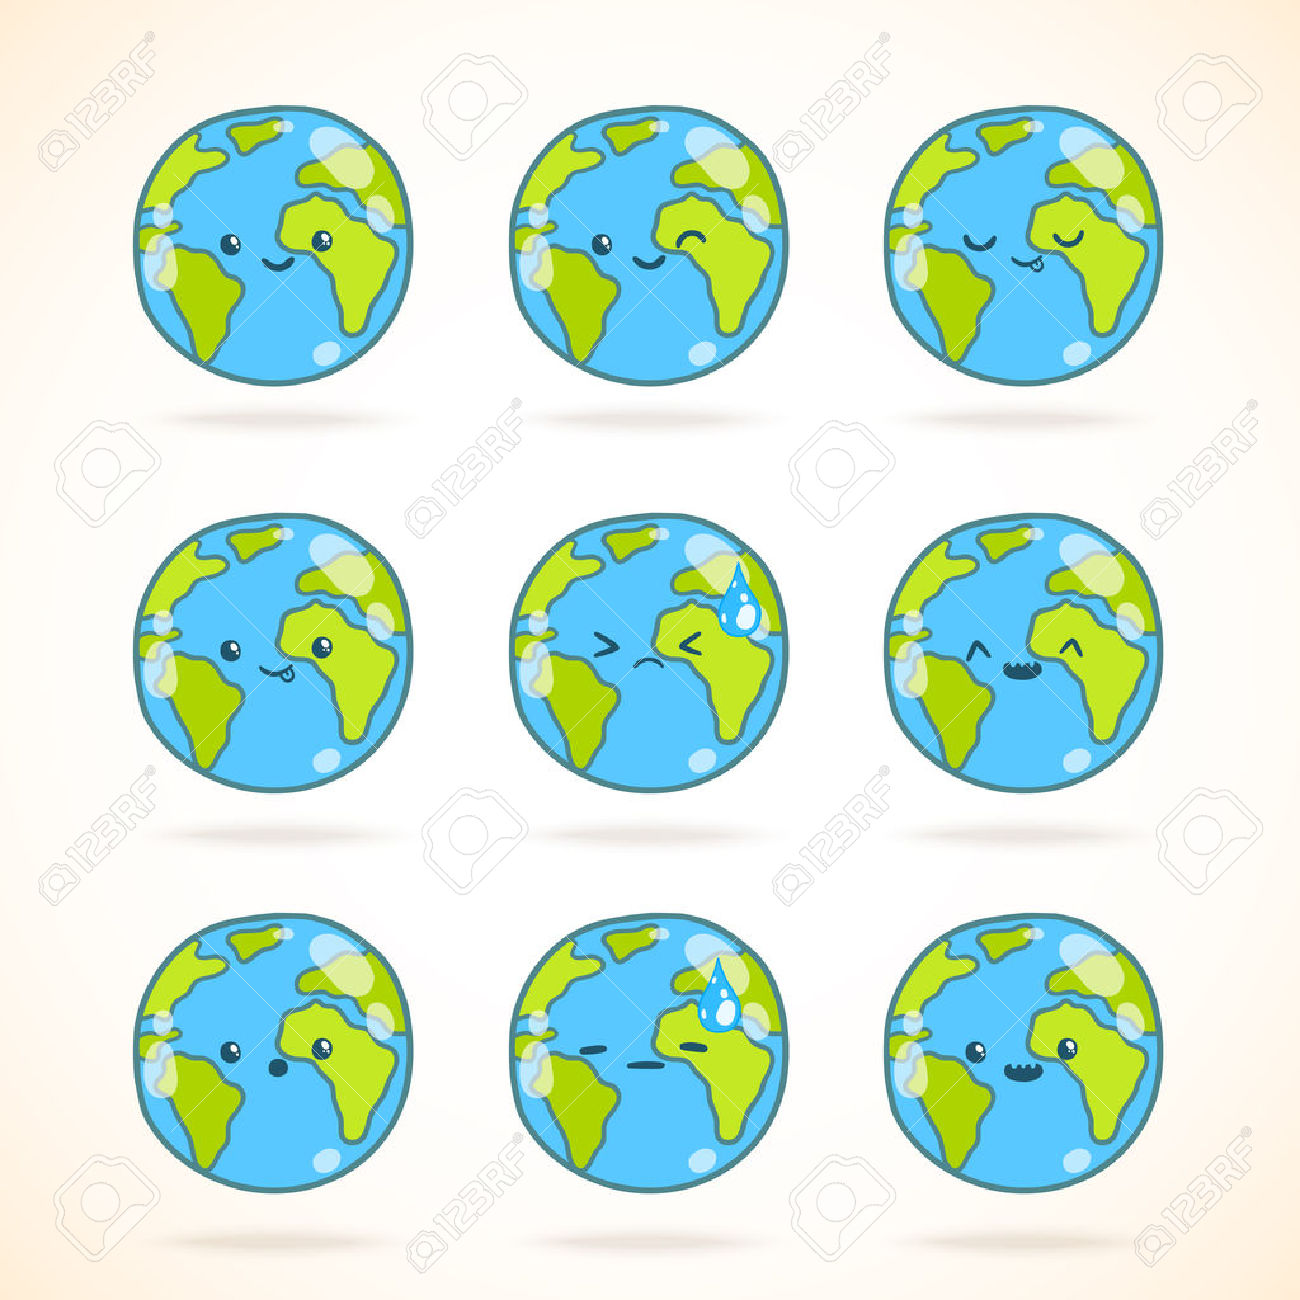 Cute Funny Cartoon Earth Globe With Face Emotions Set. Vector.